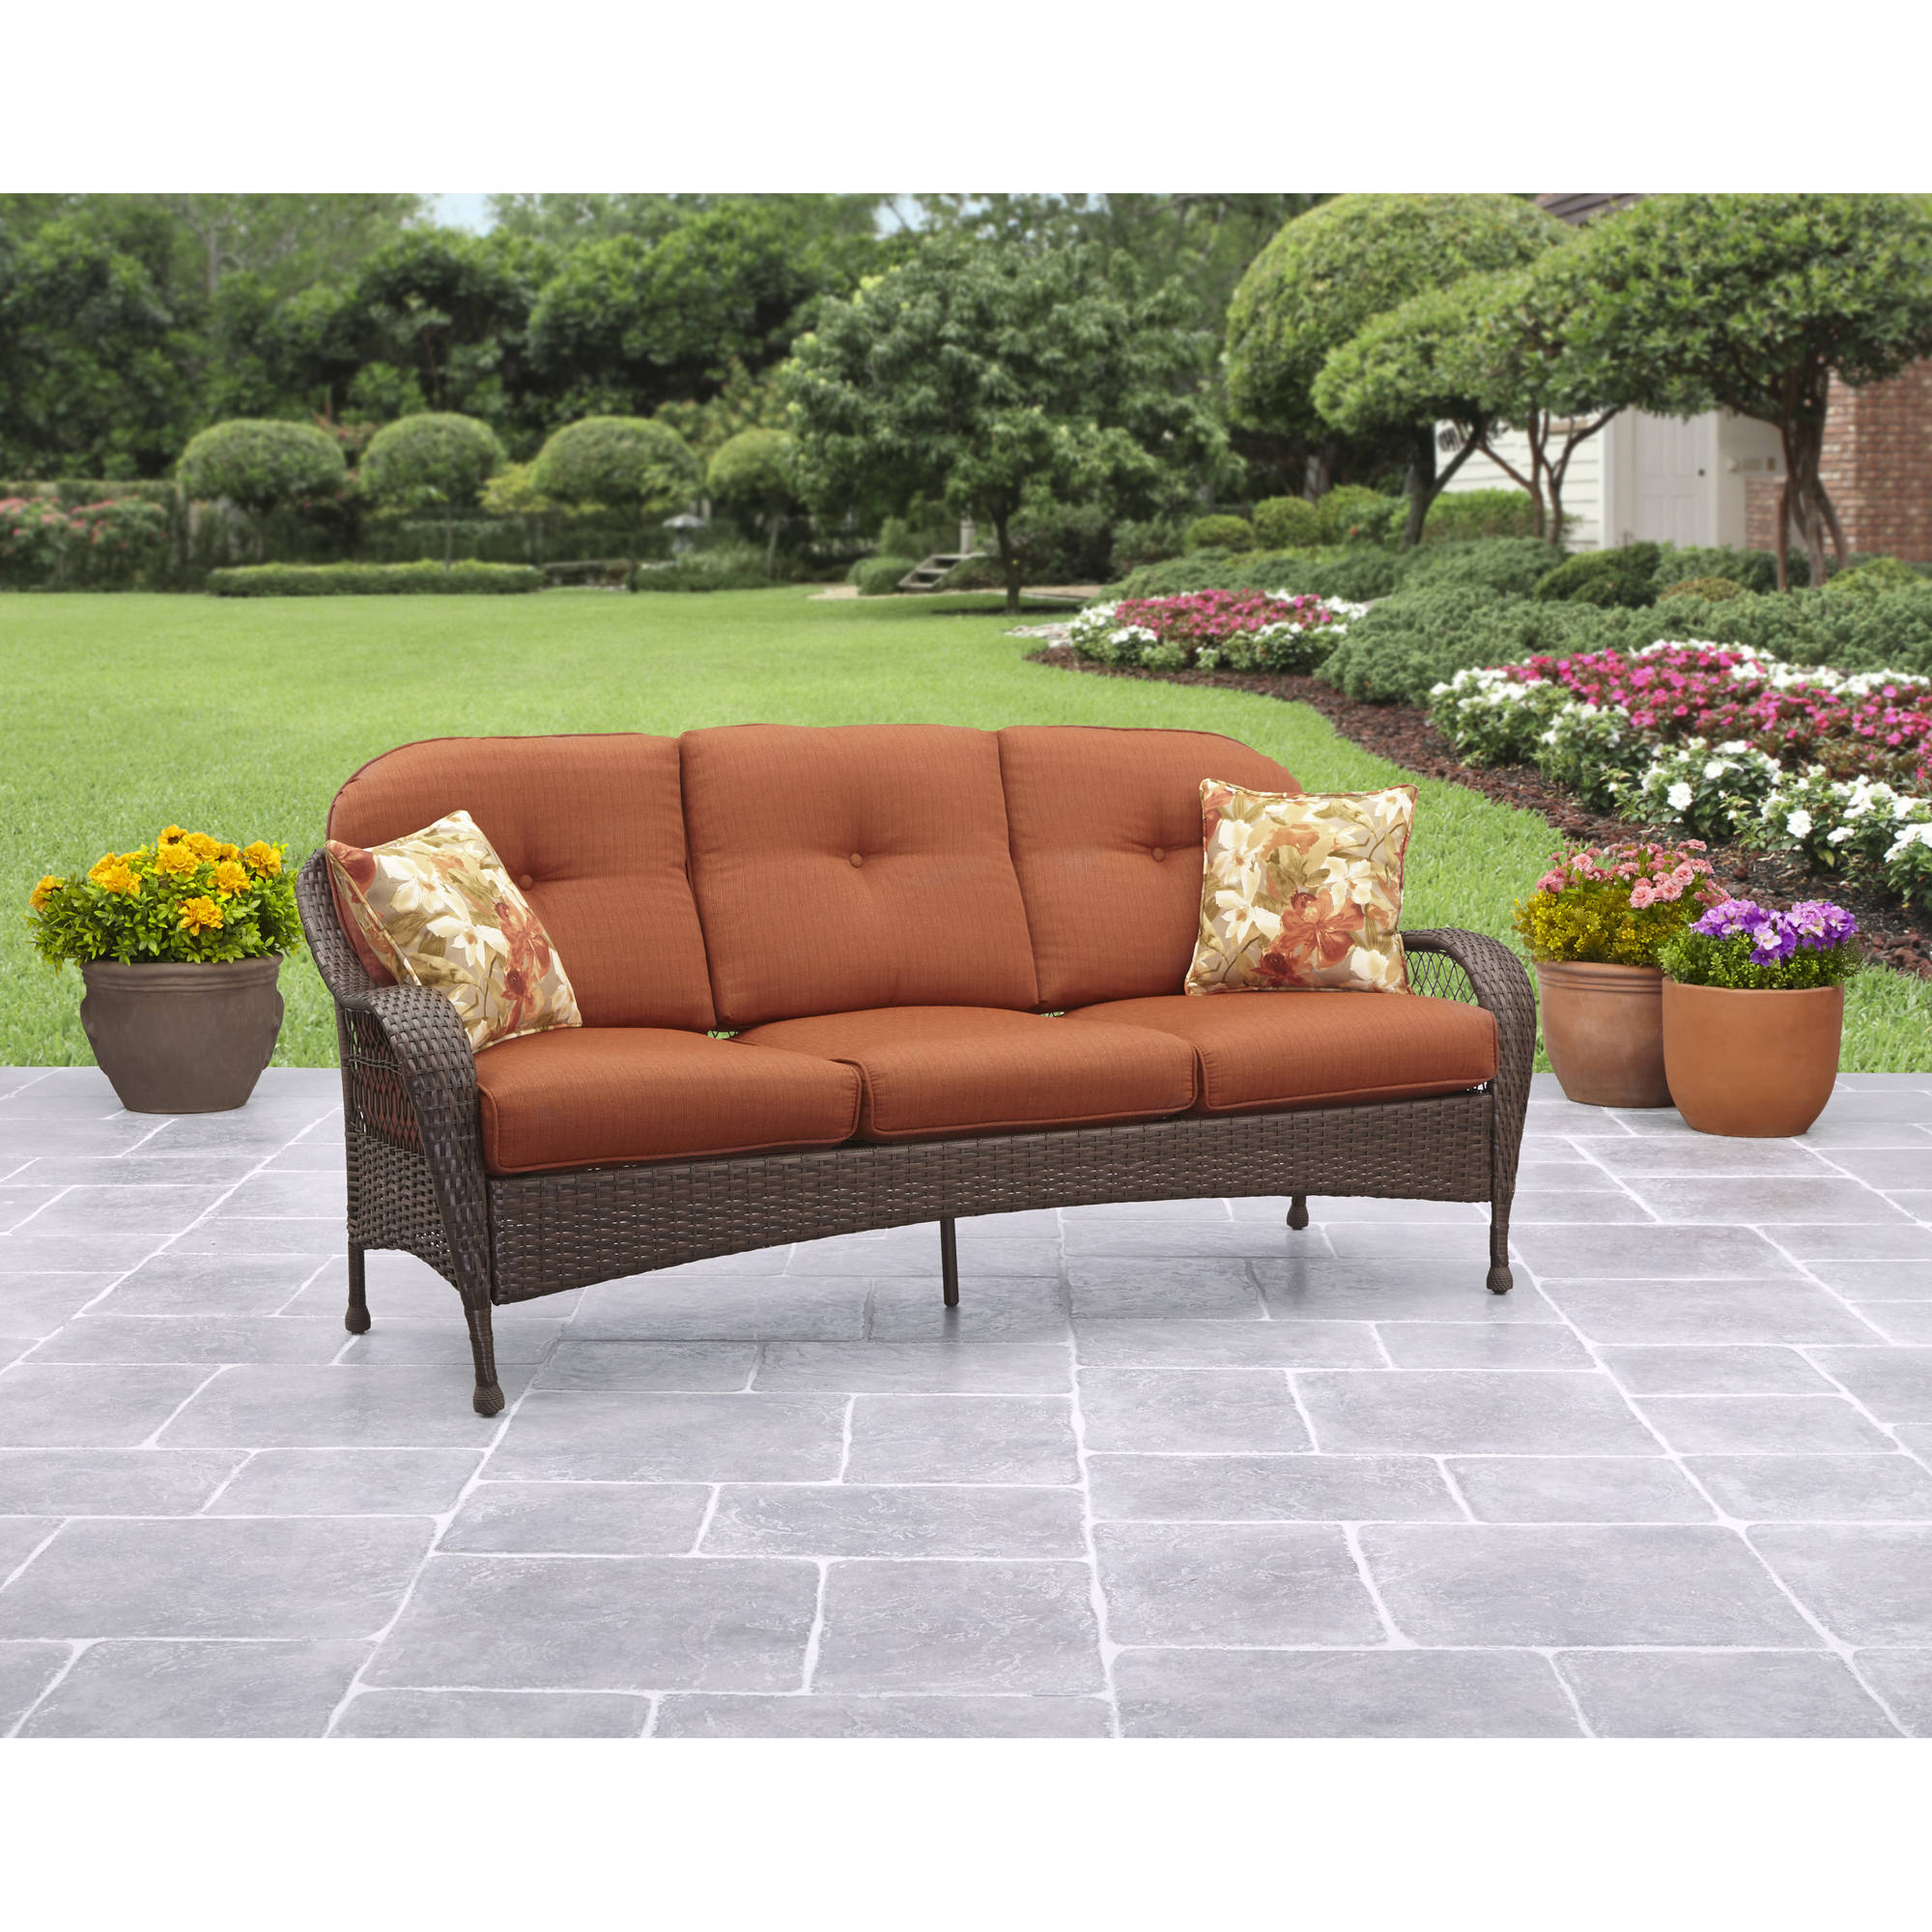 better homes and gardens azalea ridge outdoor sofa seats 3 walmartcom